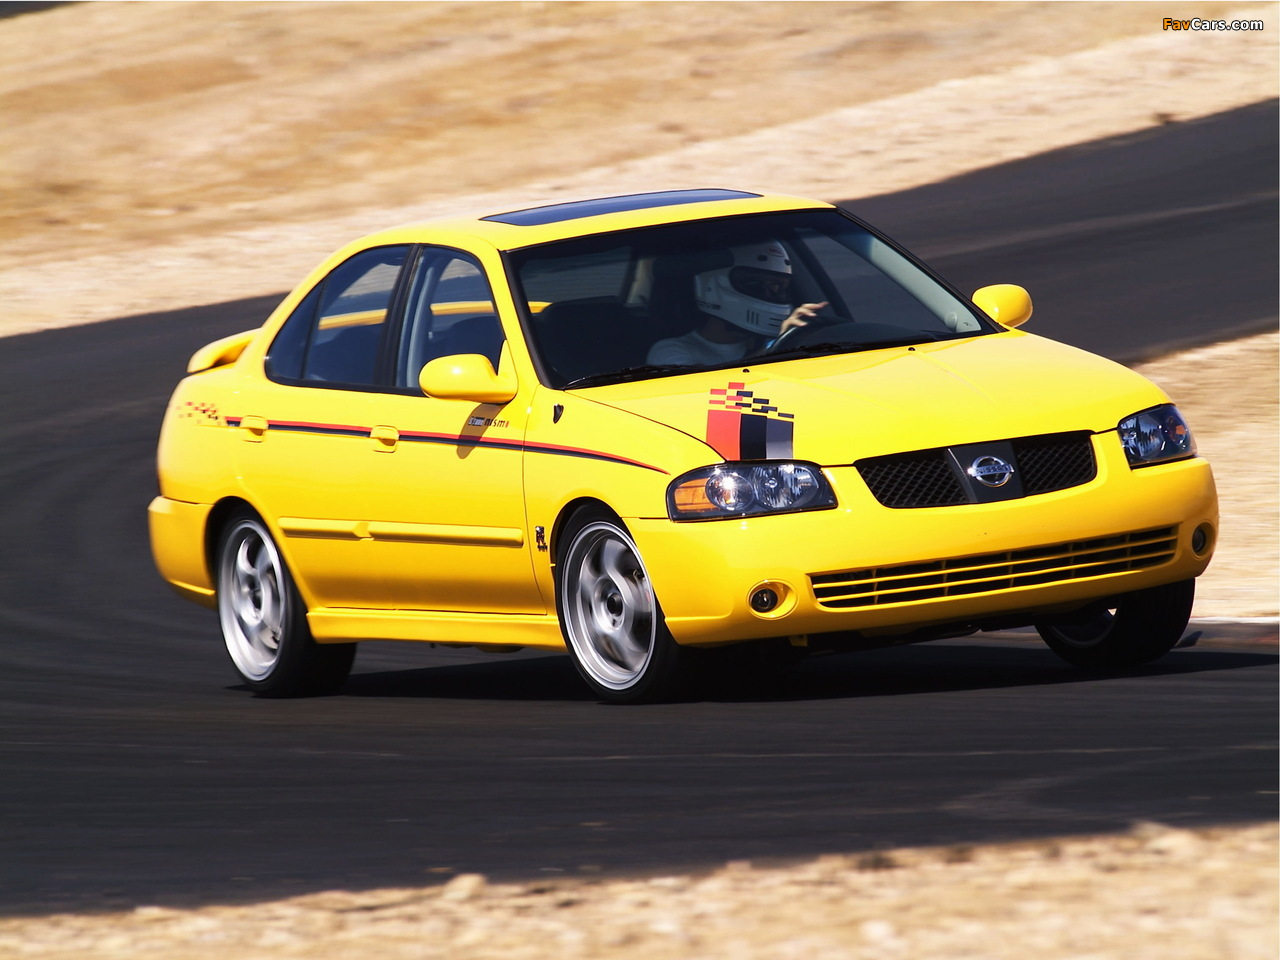 Nismo Nissan Sentra SE-R (B15) 2004 pictures (1280 x 960)